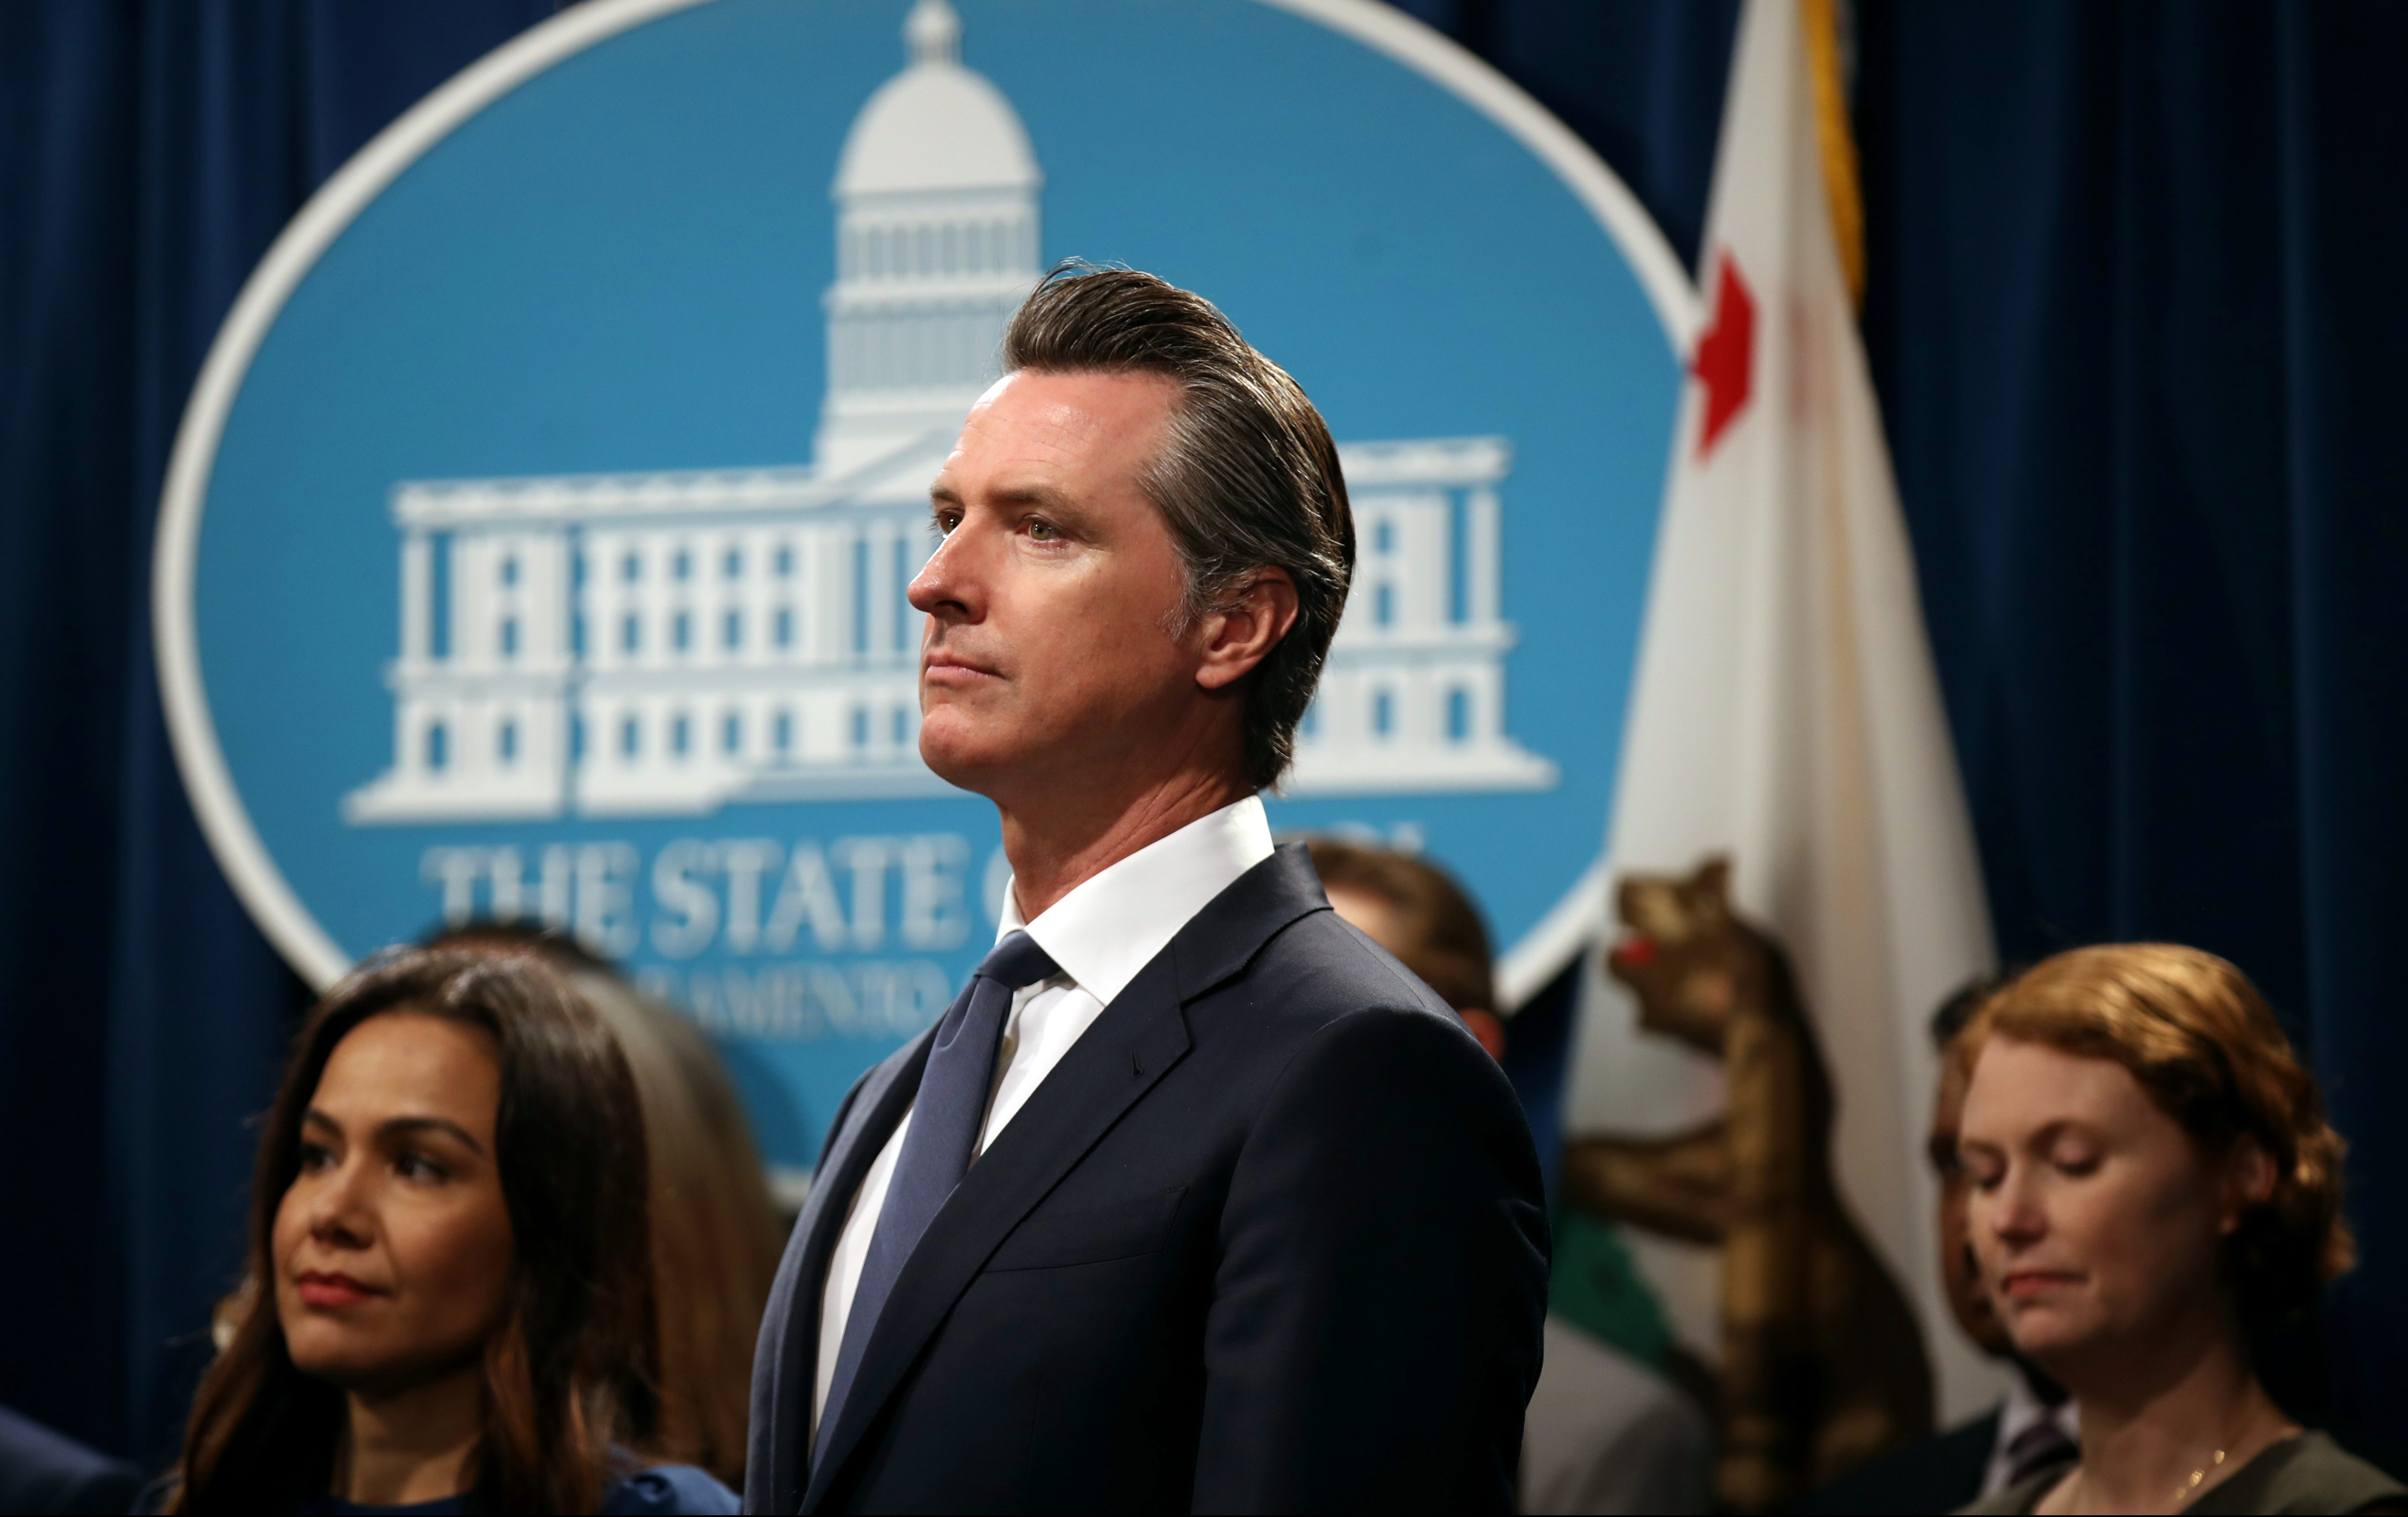 California's New Abortion Bill Is Unsettling, Expensive, and Immoral